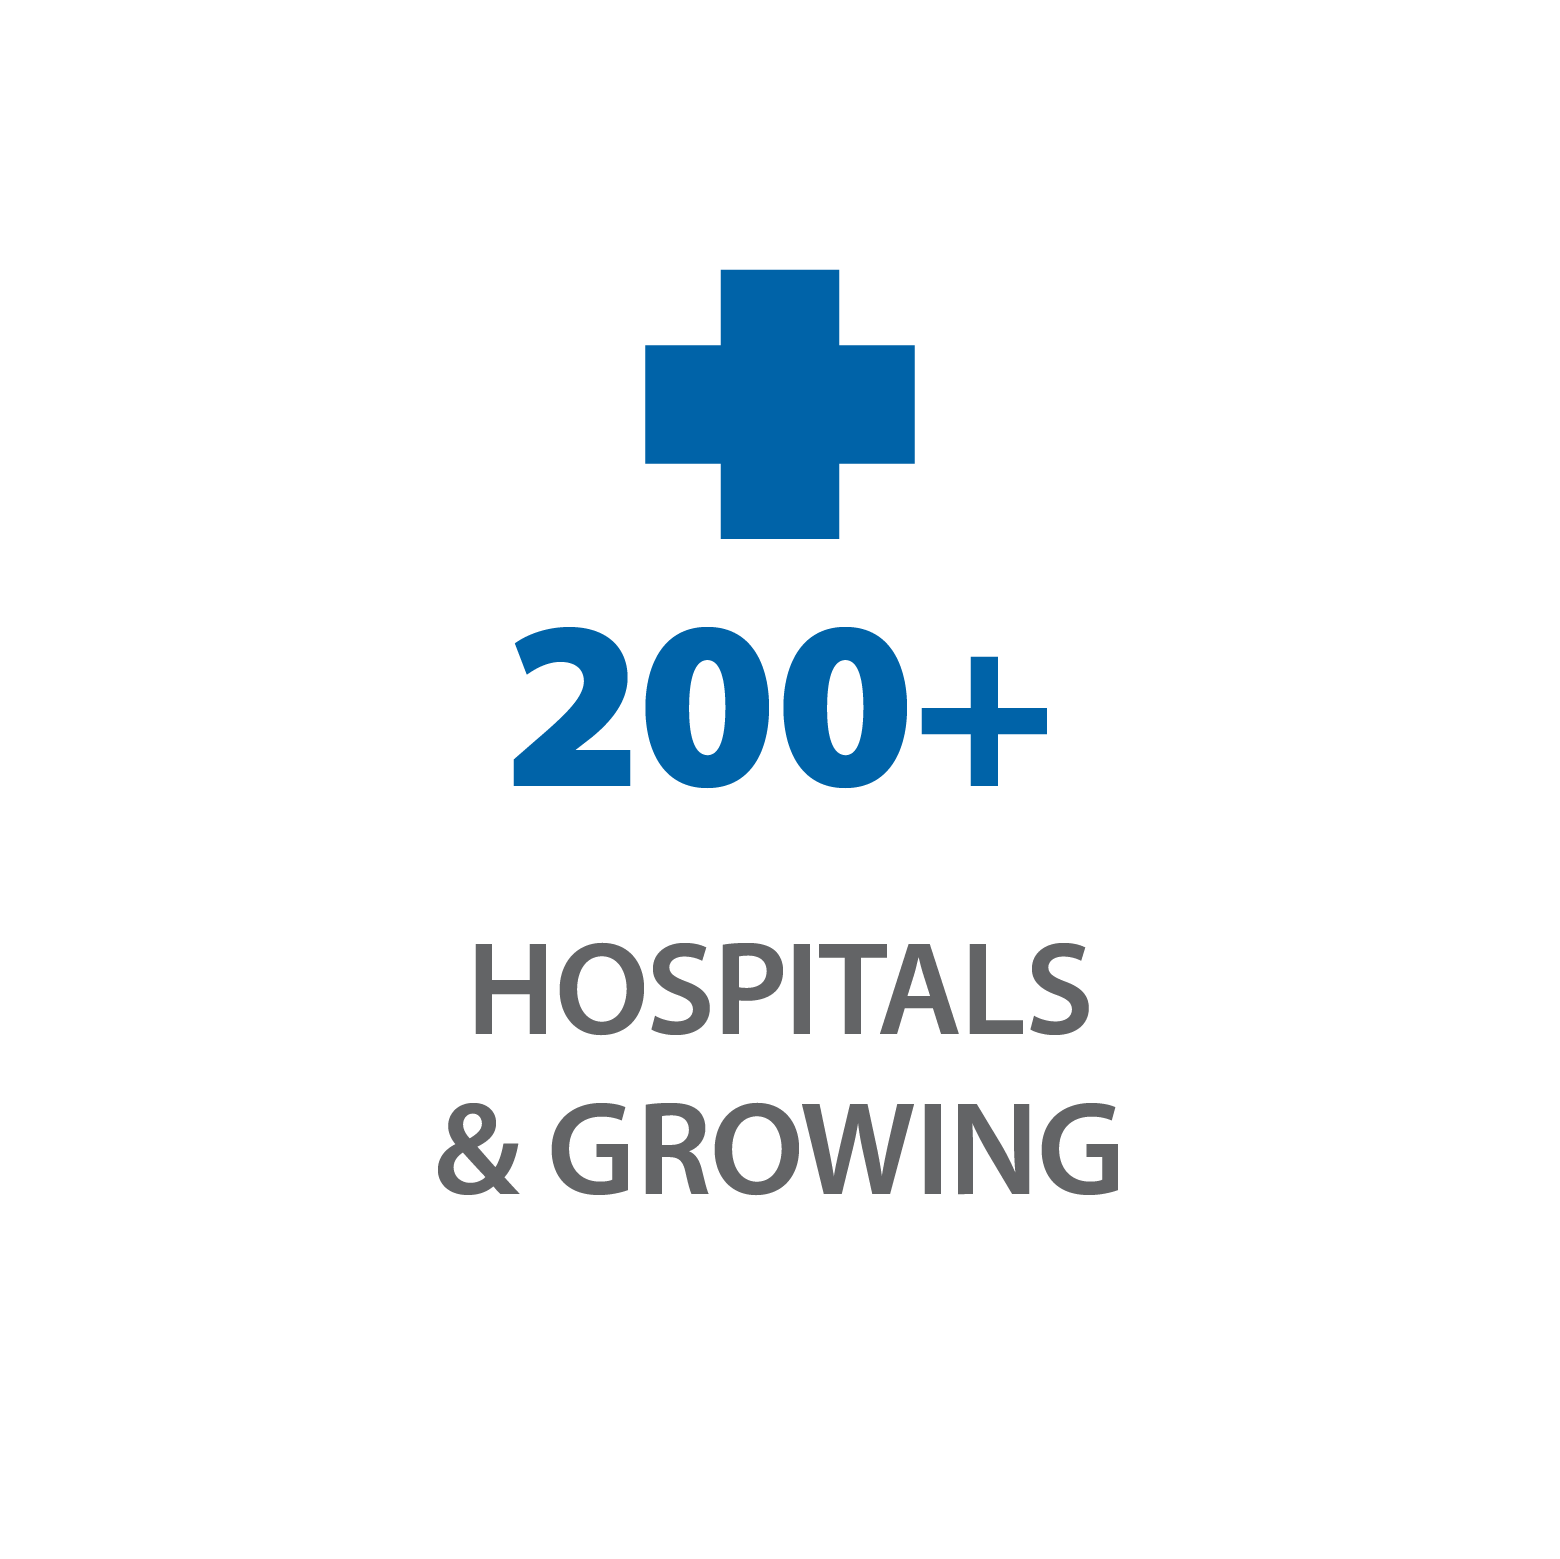 190 plus hospitals and growing